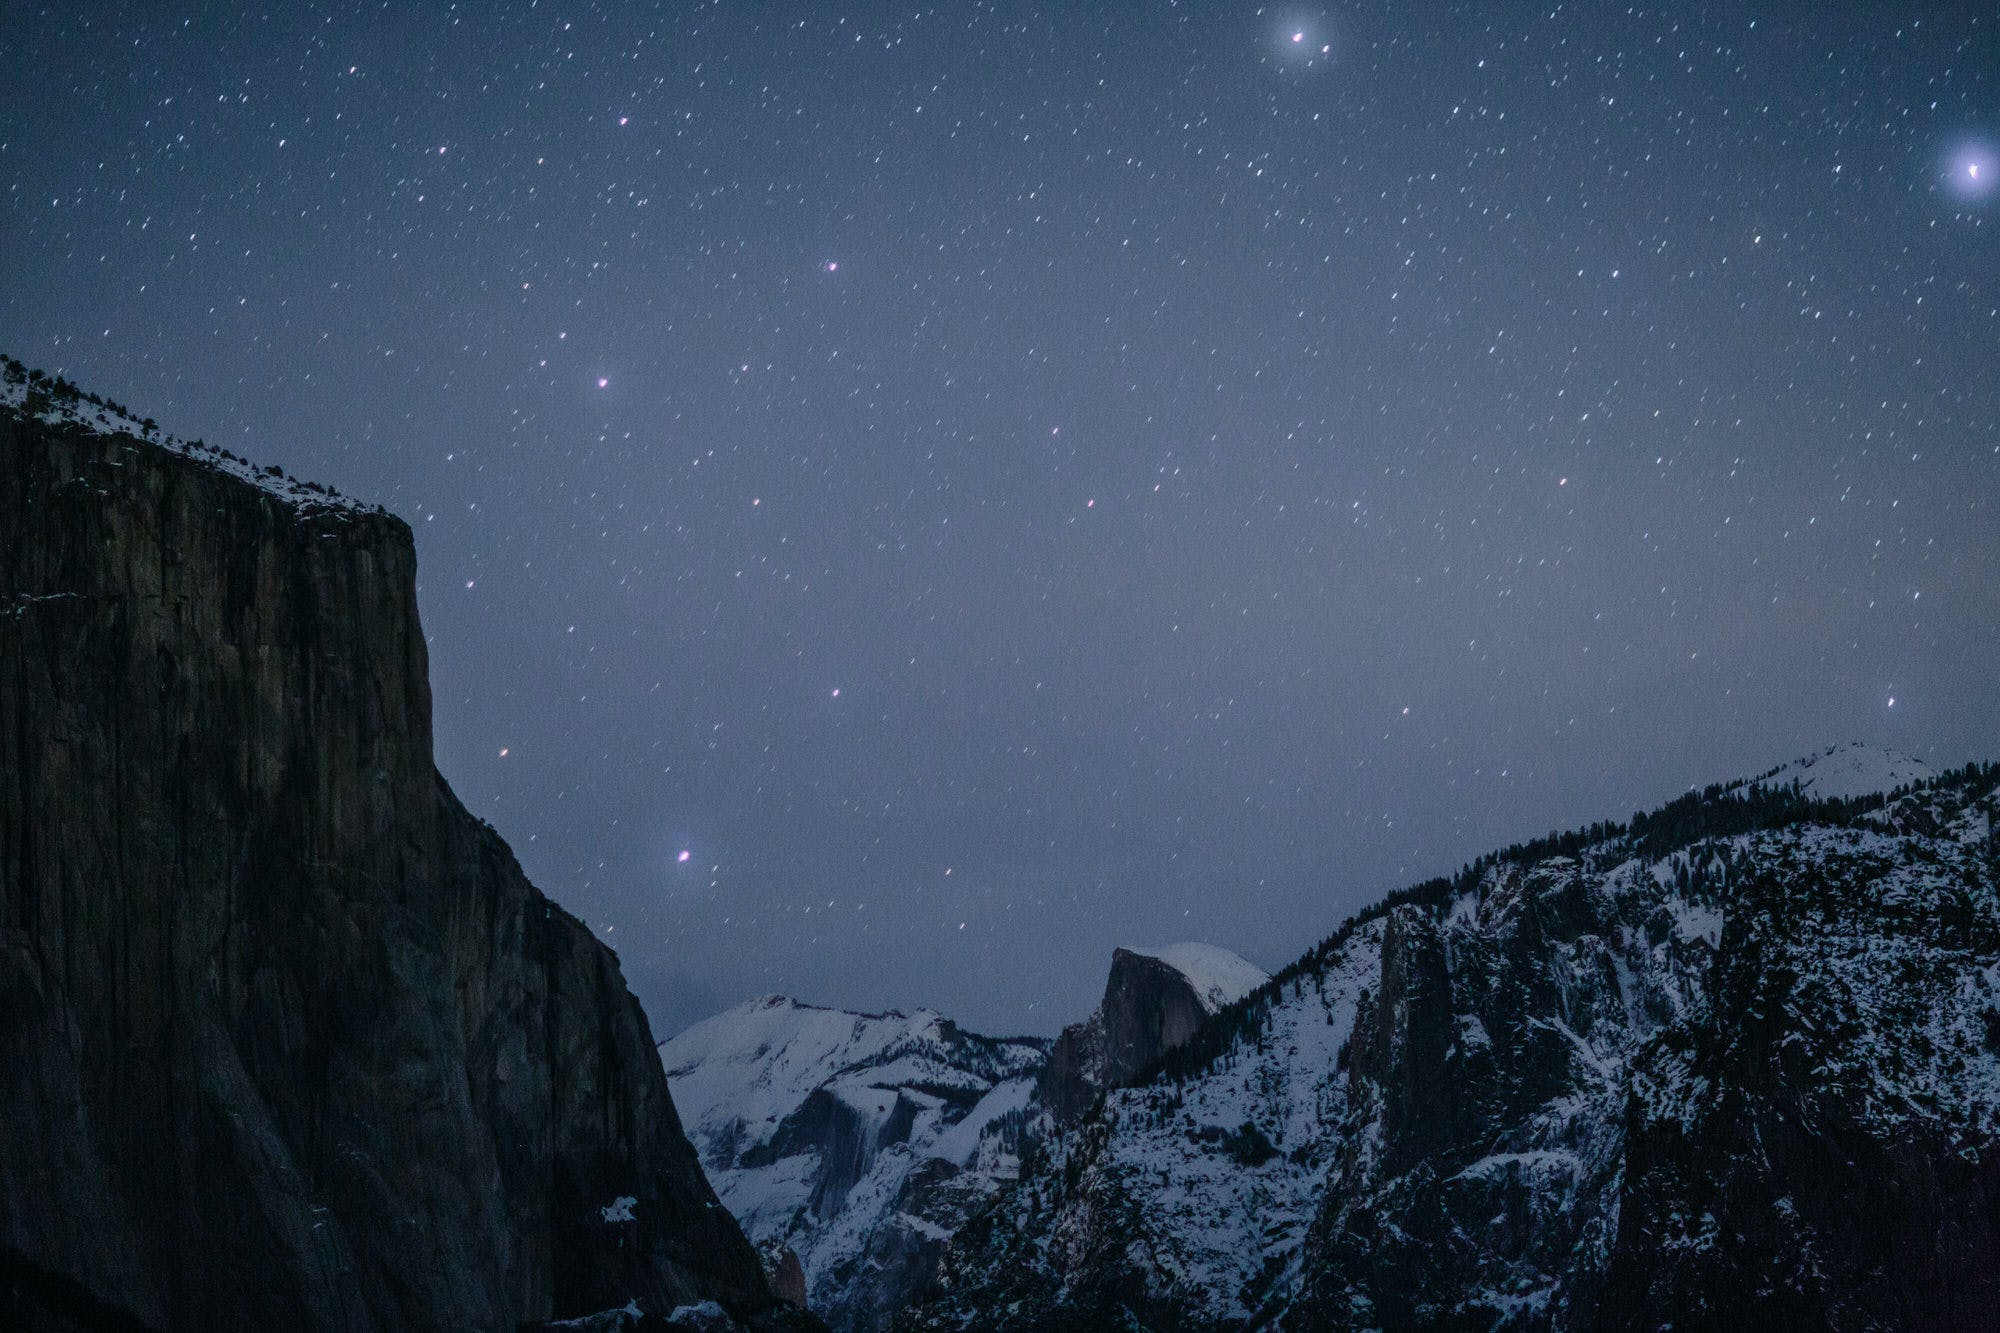 amazing star picture at night in yosemite